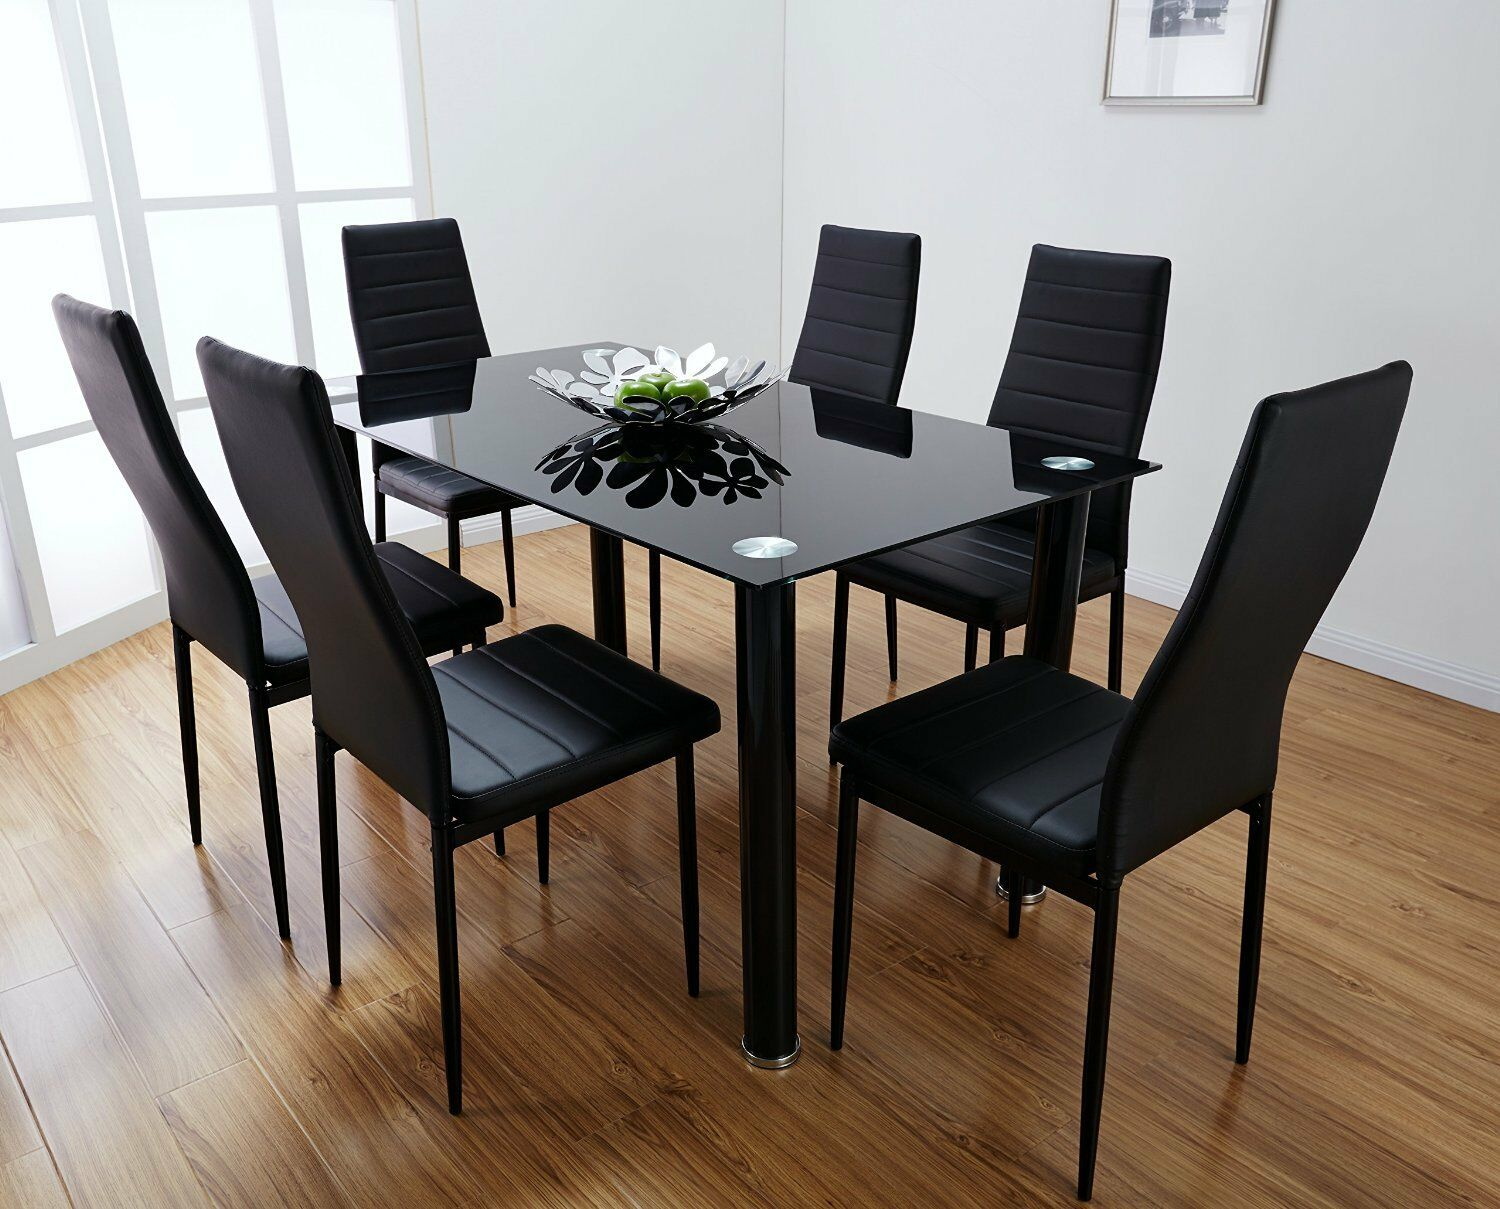 Lunar Rectangle Glass Dining Table Set Ase Black Faux